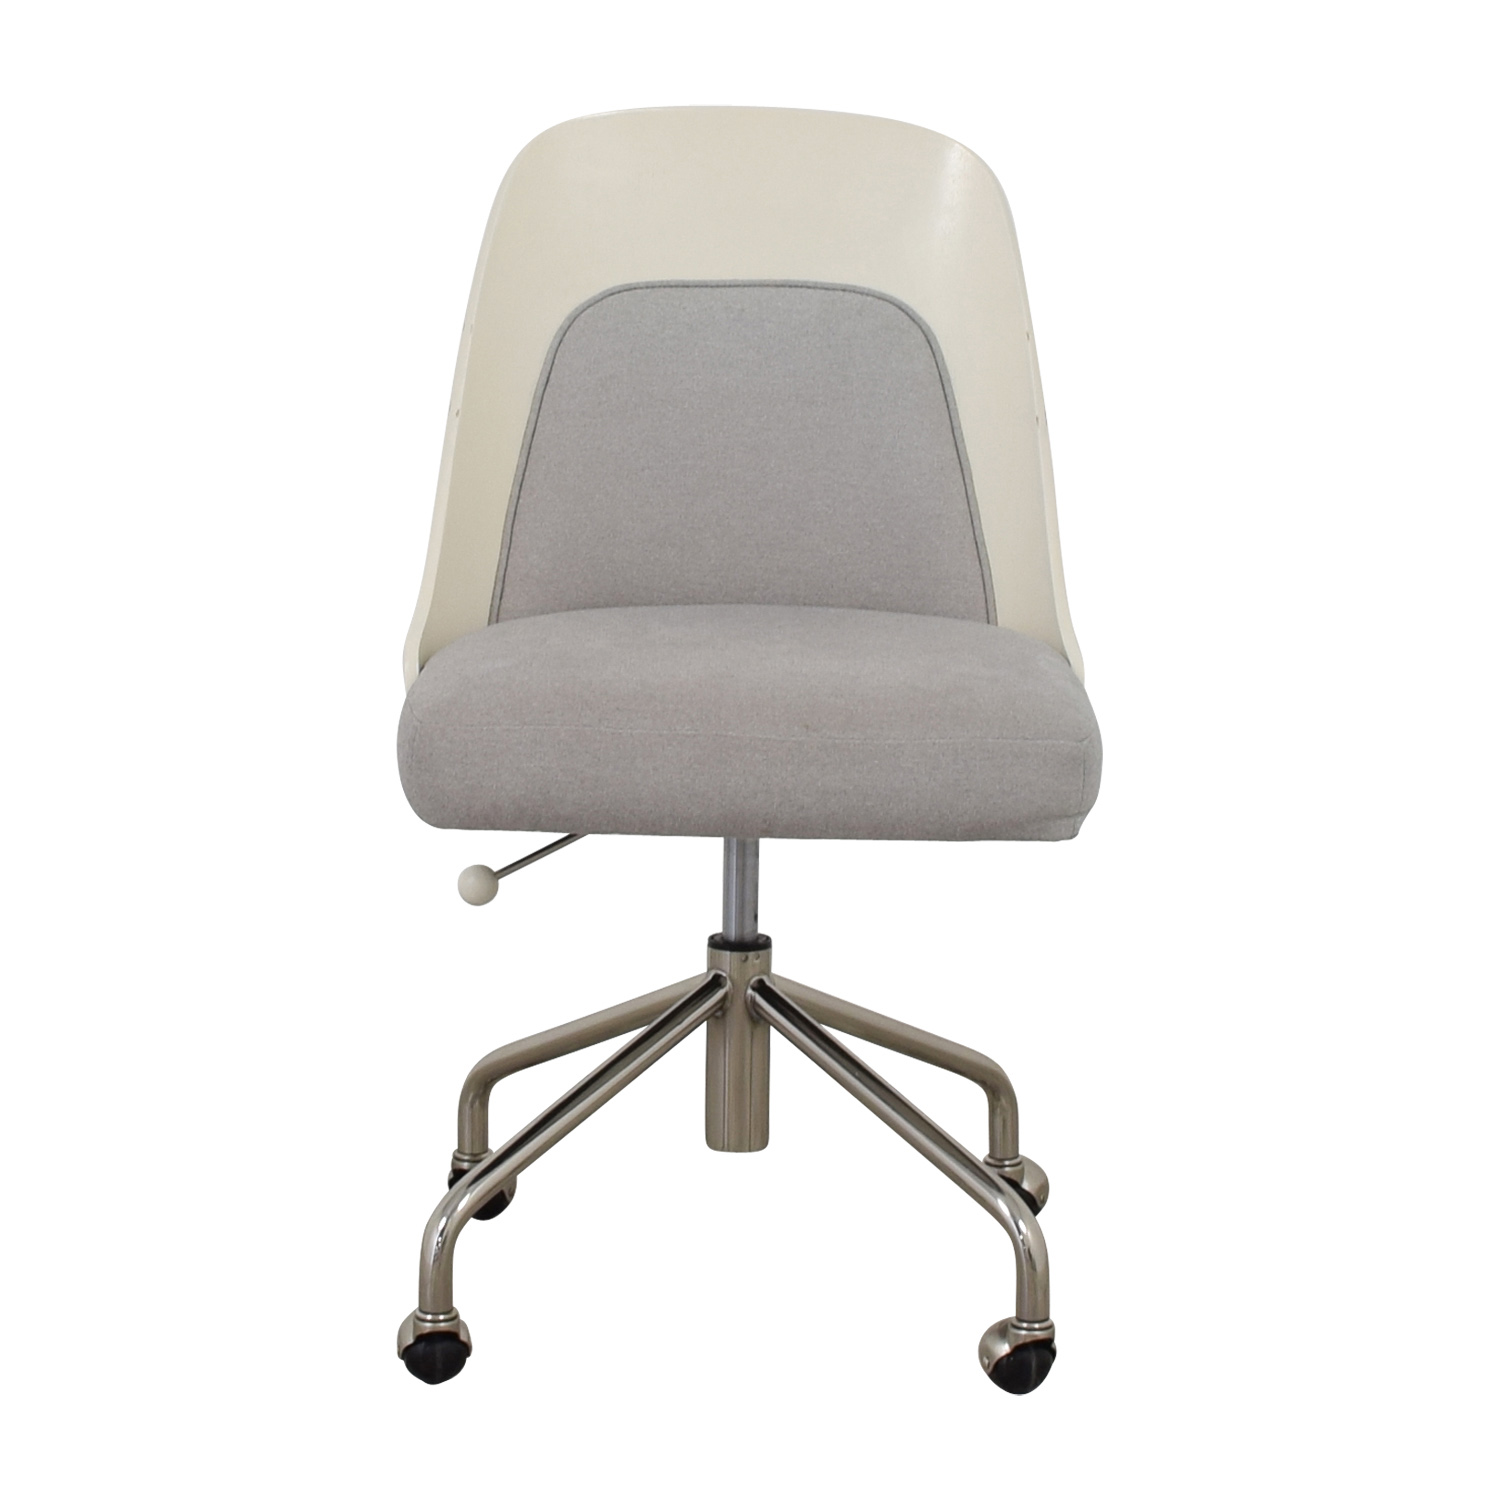 73% OFF   West Elm West Elm Bentwood White And Grey Office Chair / Chairs